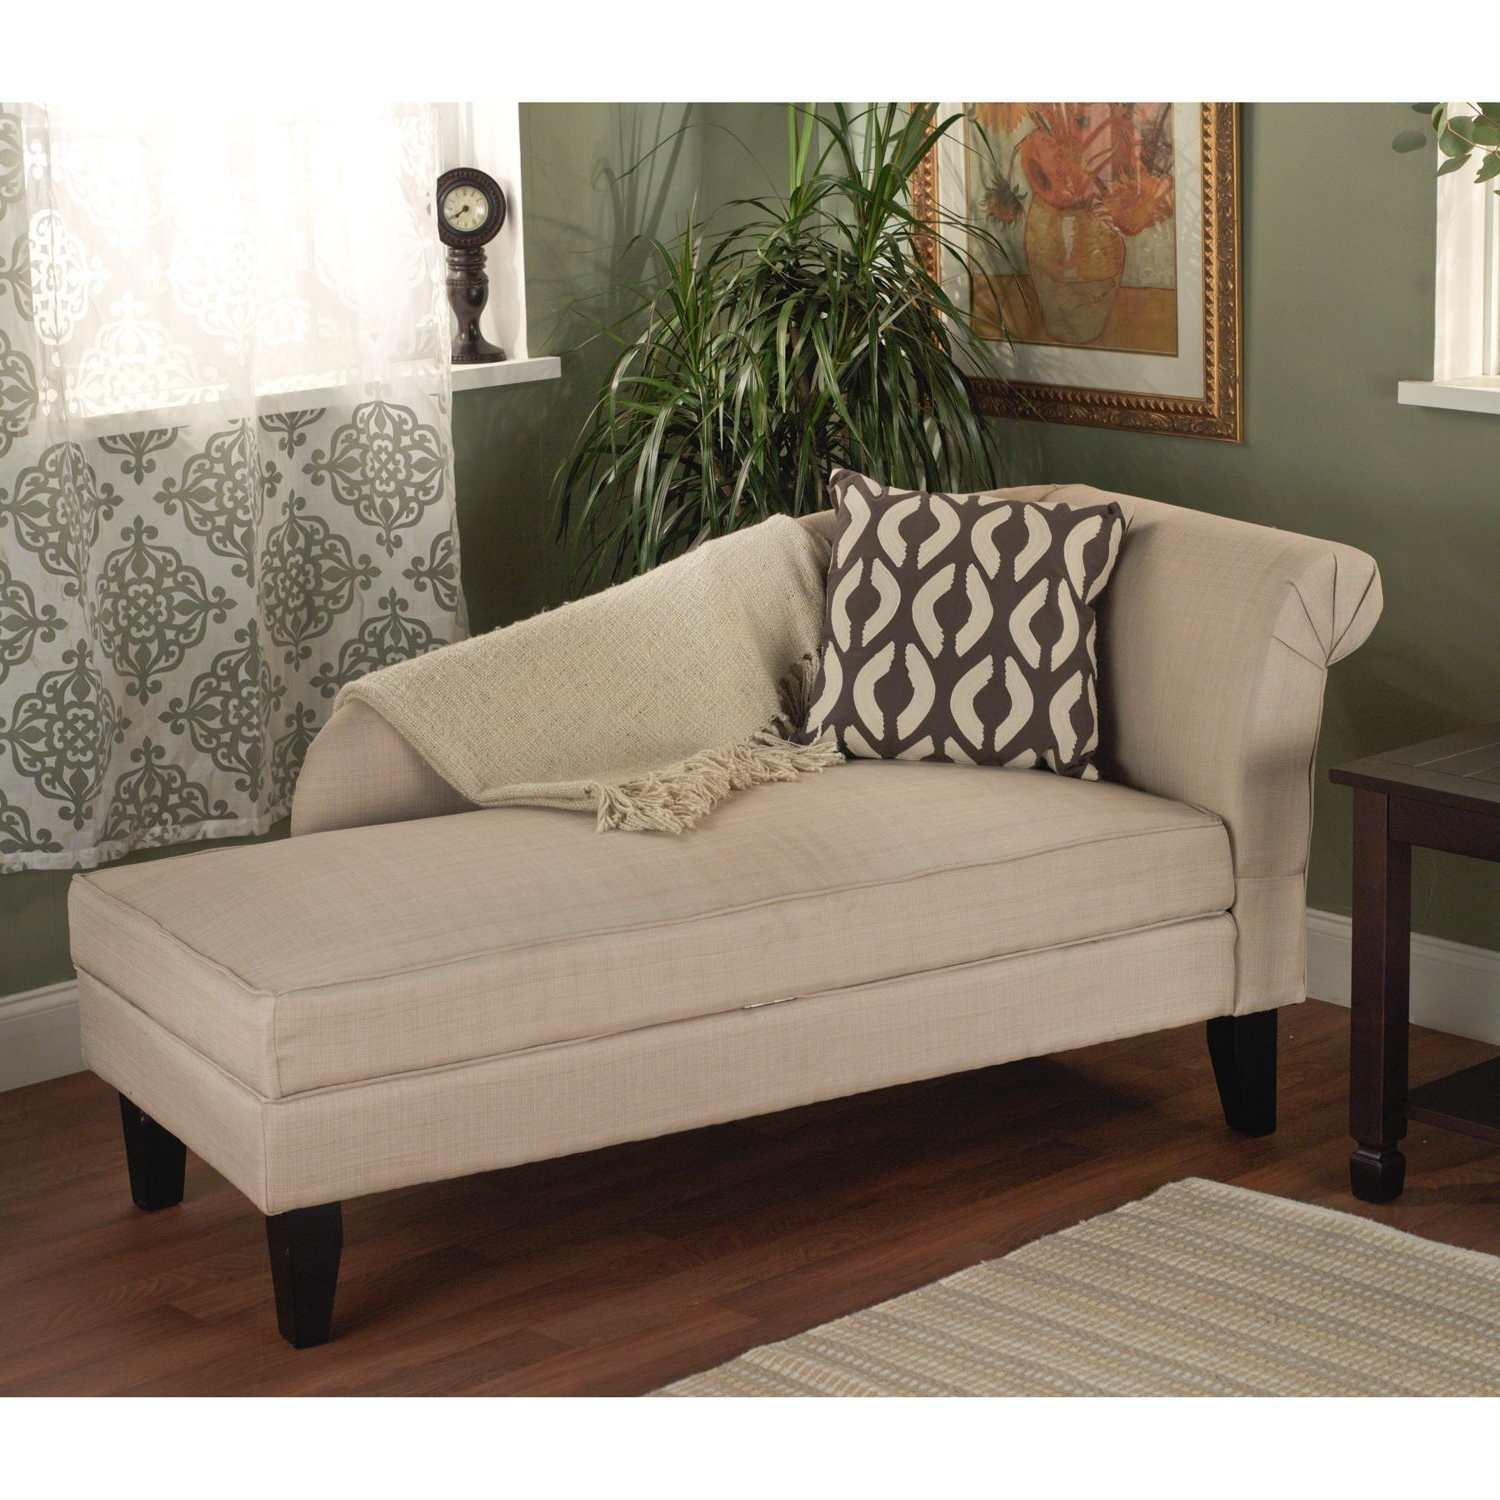 Target Marketing Systems,leena Storage Chaise Lounger  Beige Throughout Recent Chaises For Bedroom (View 6 of 15)